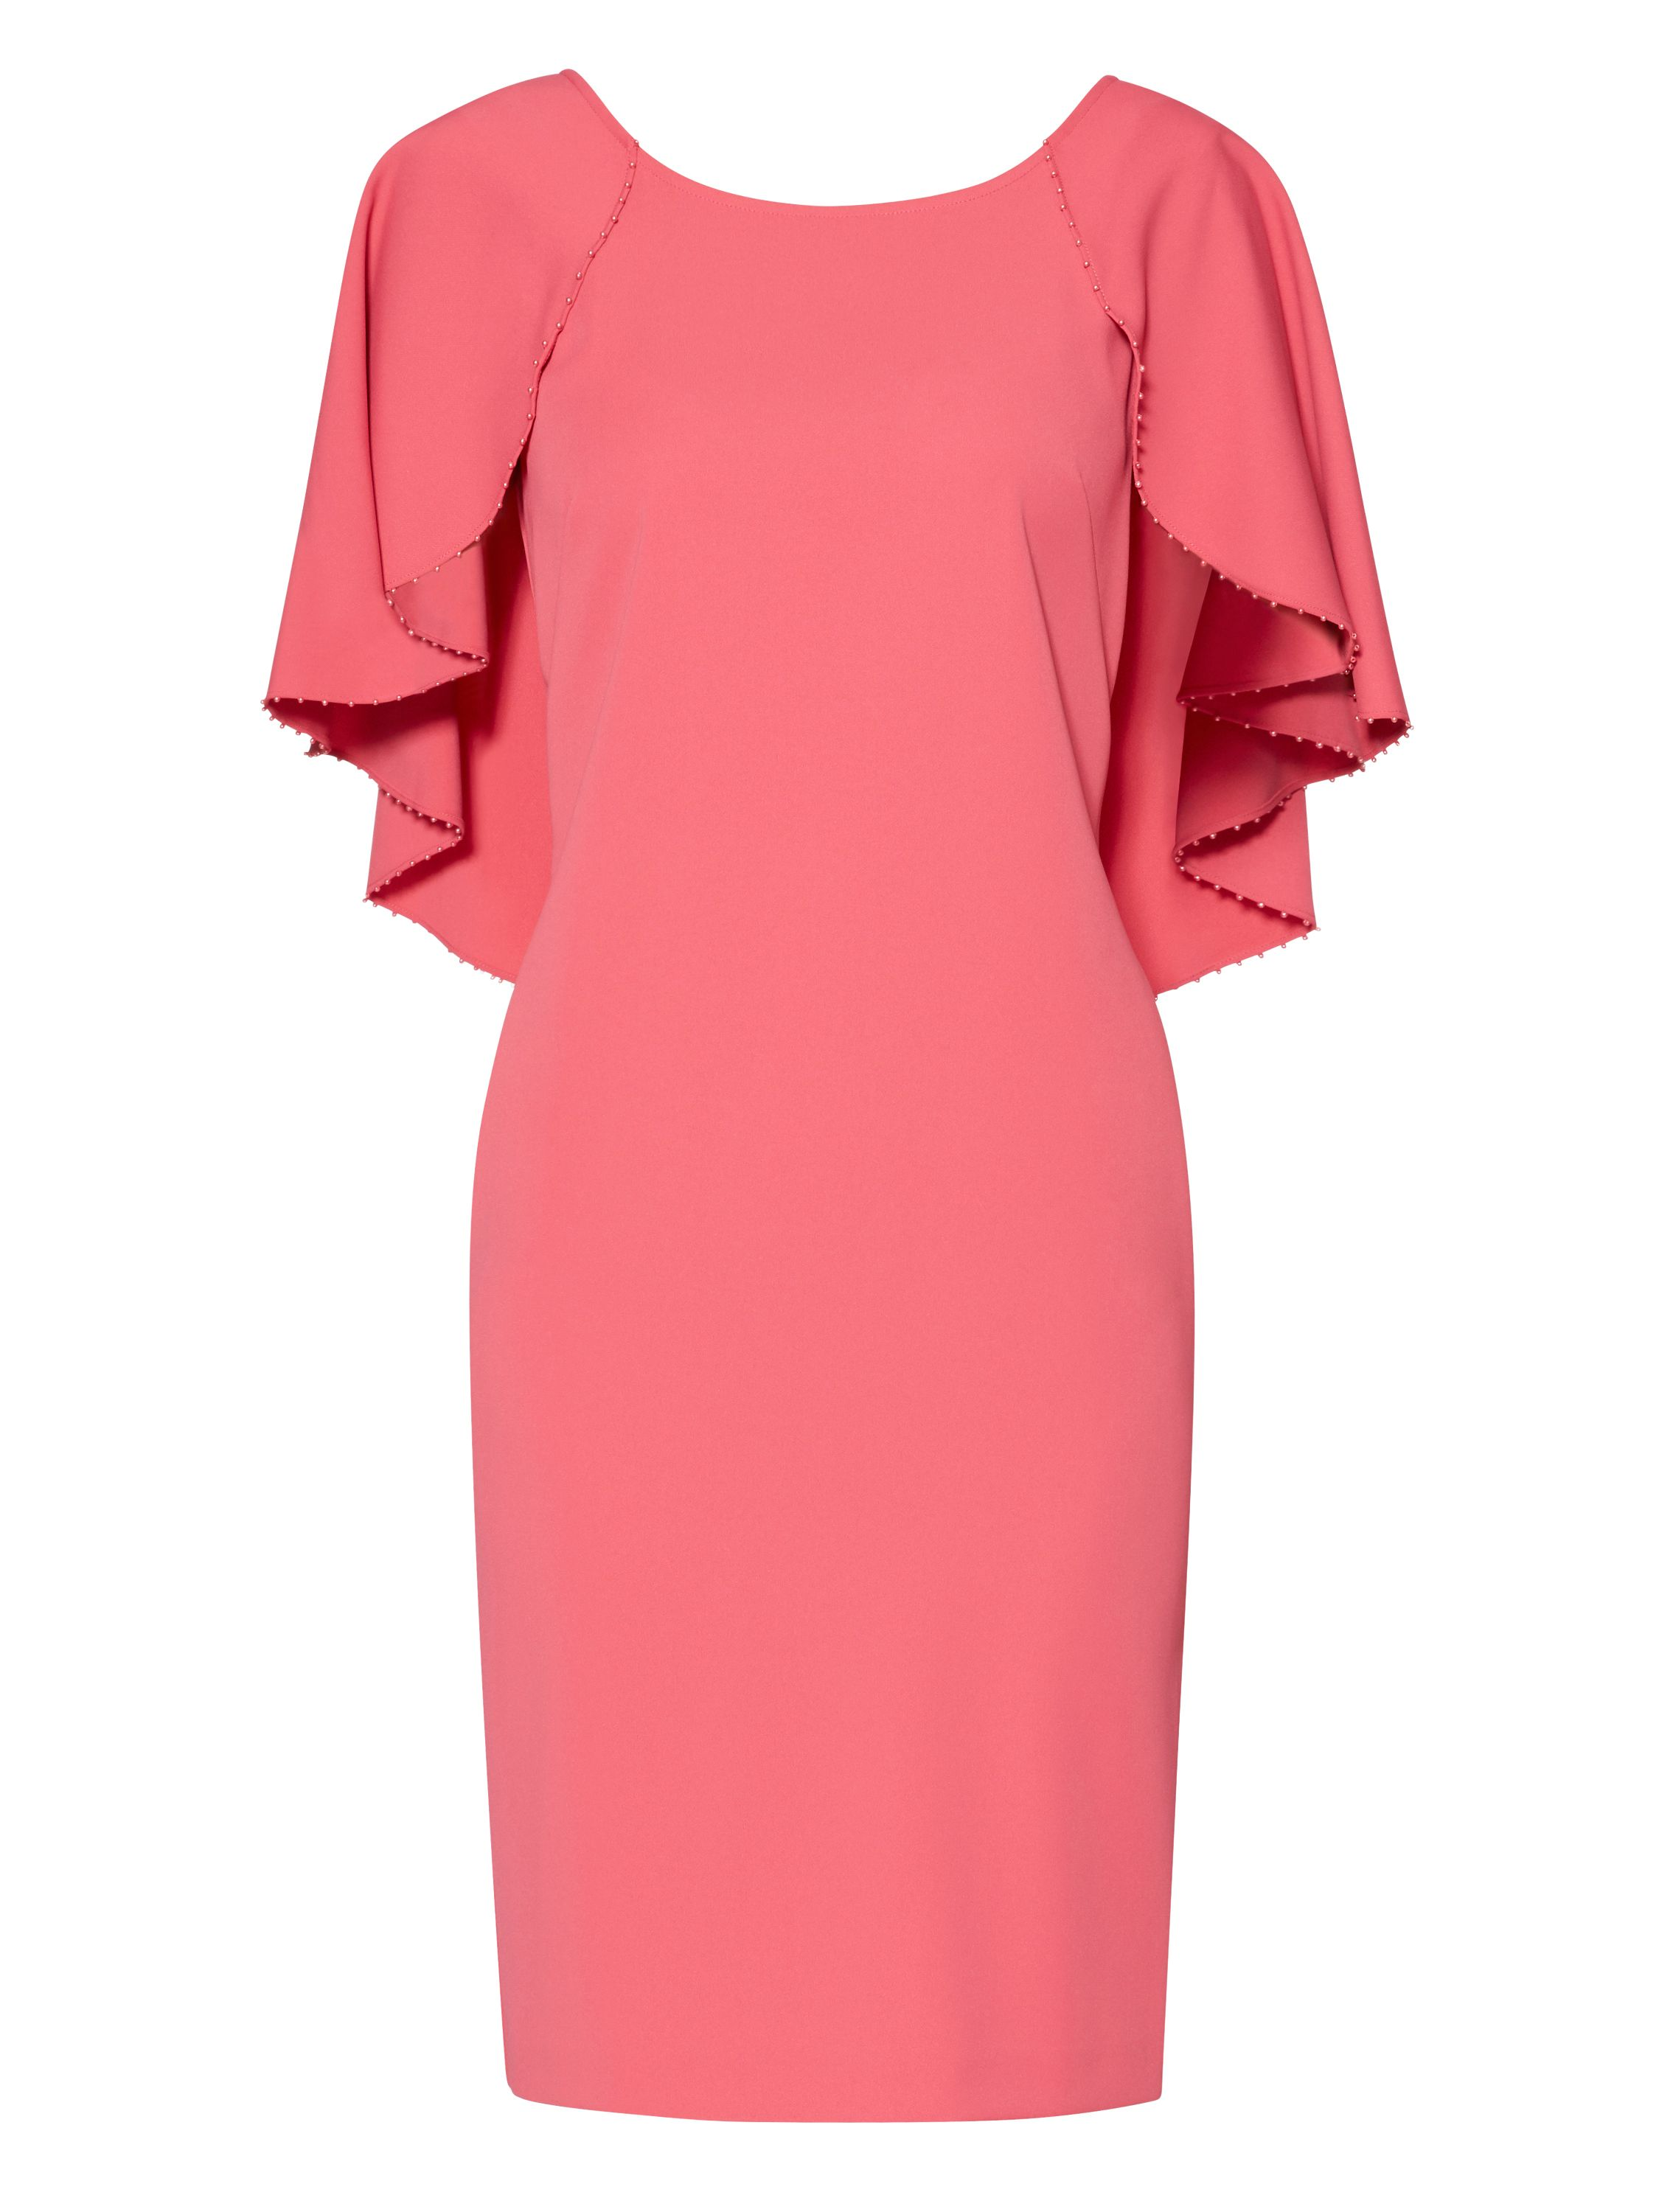 Gina Bacconi Moss Crepe Dress with Beaded Edge Cape, Coral